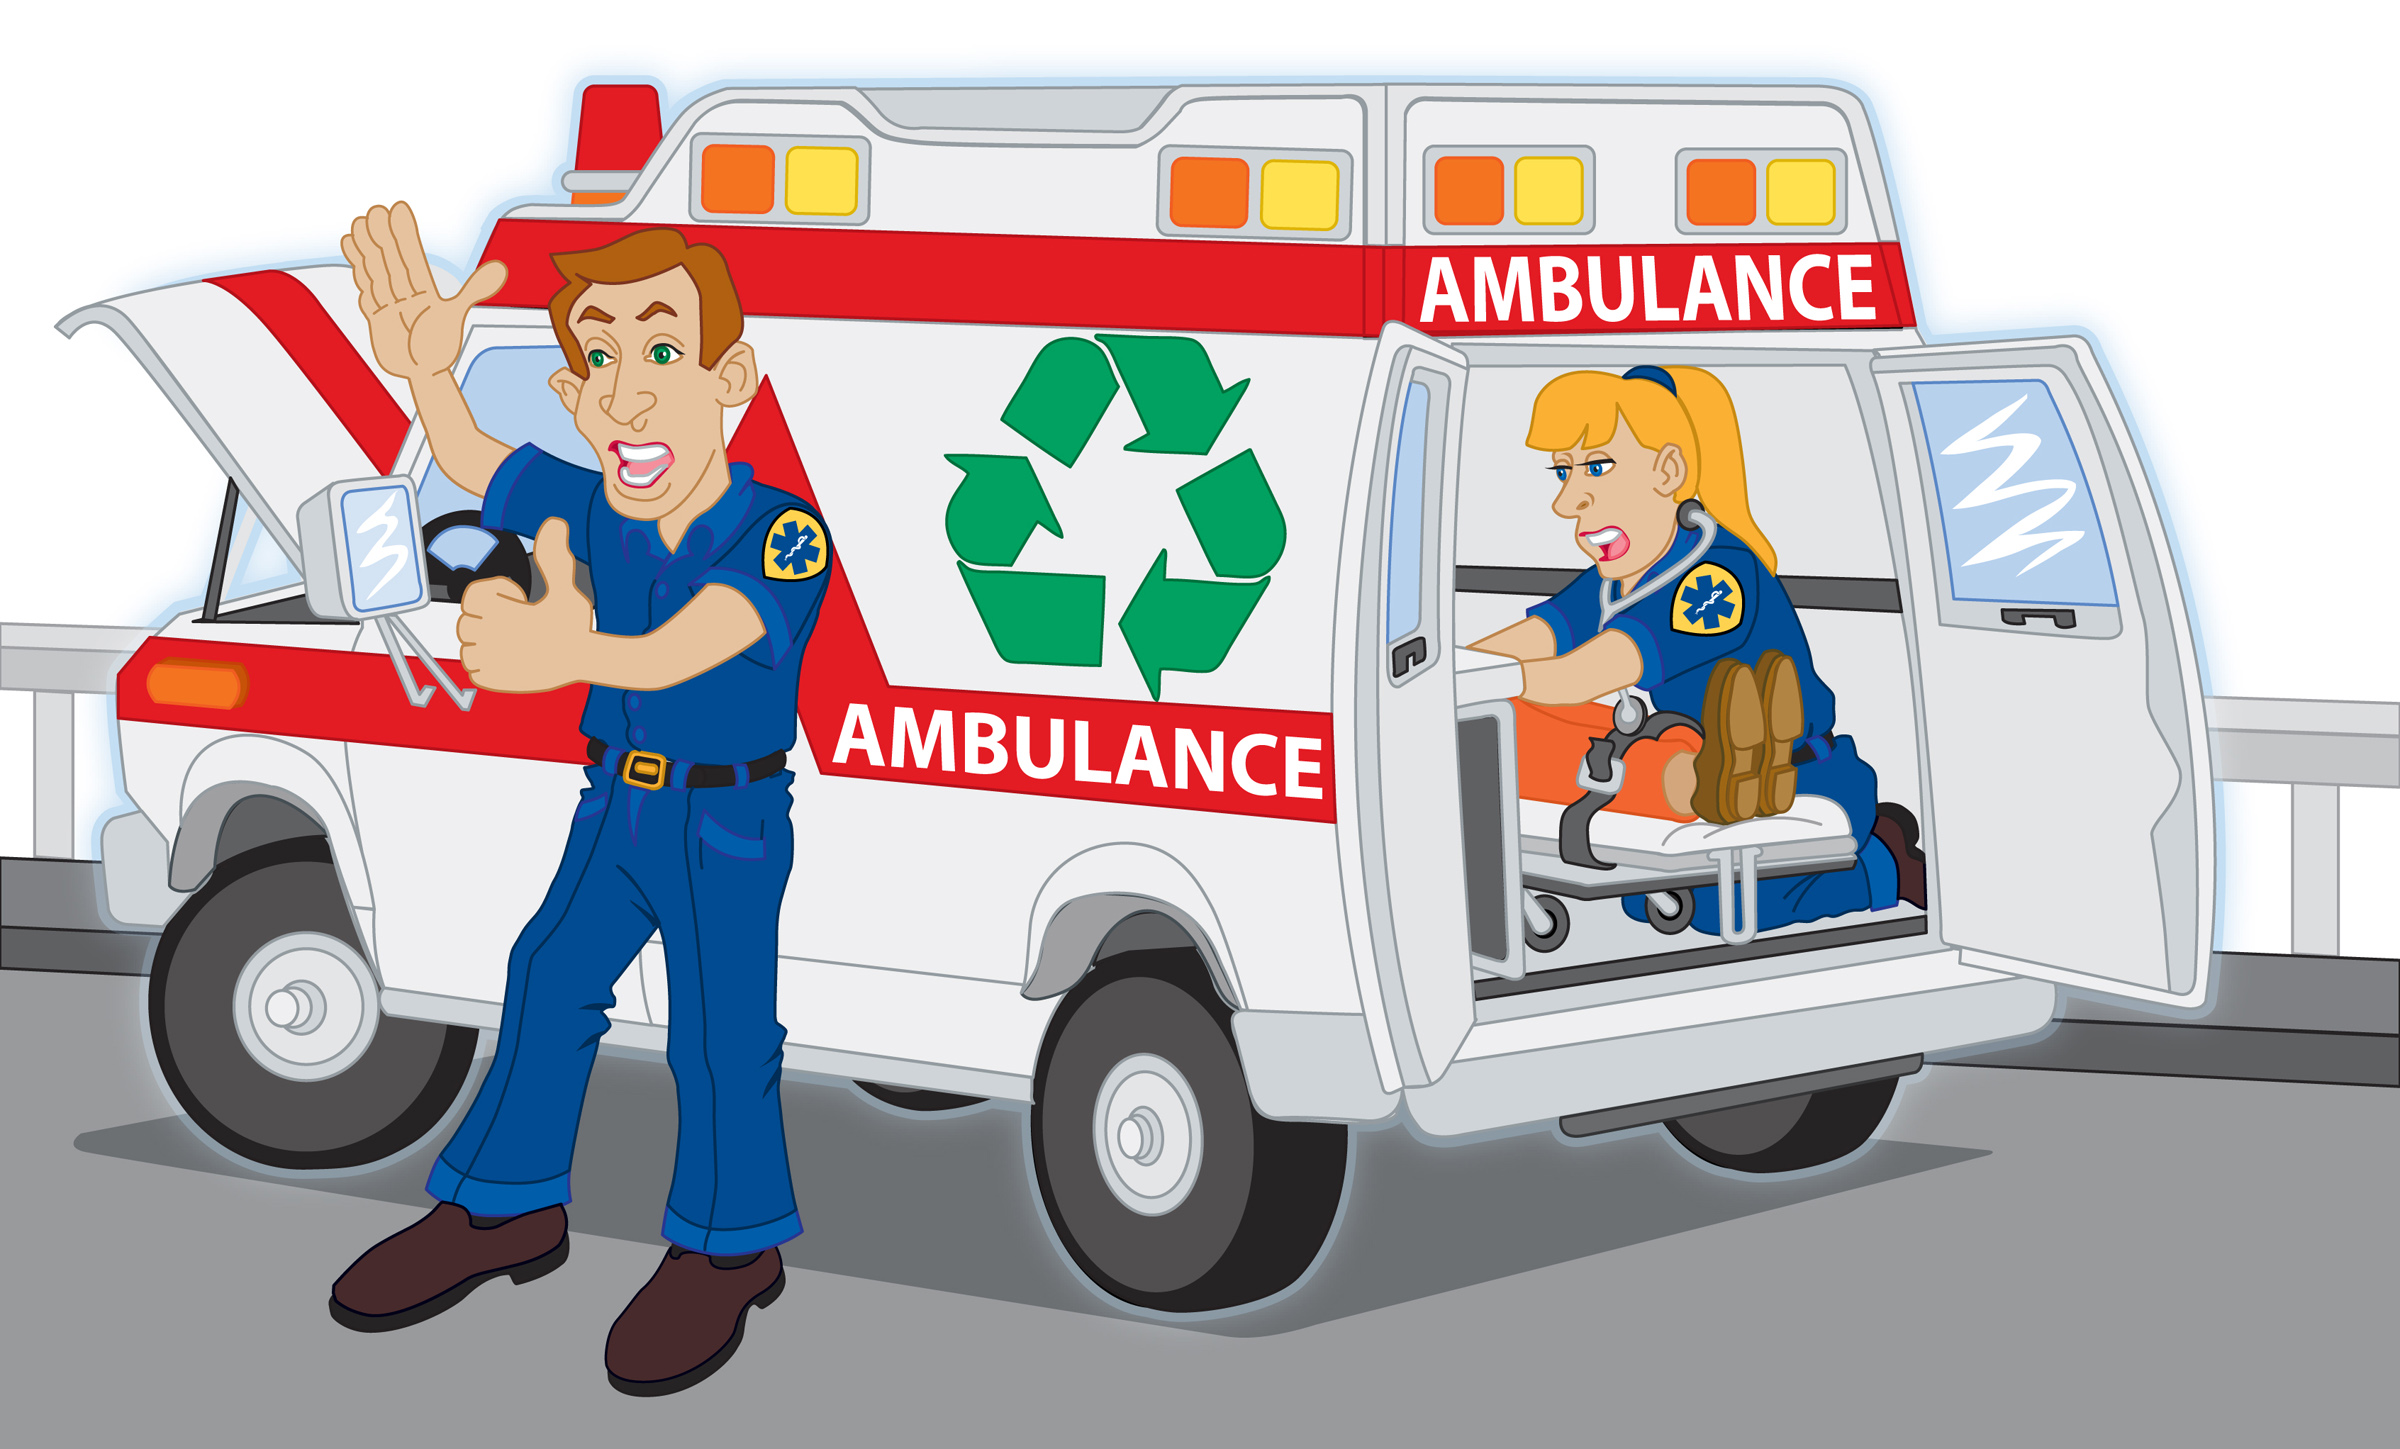 ambulance game, play this fun ambulance game and see how well you can do